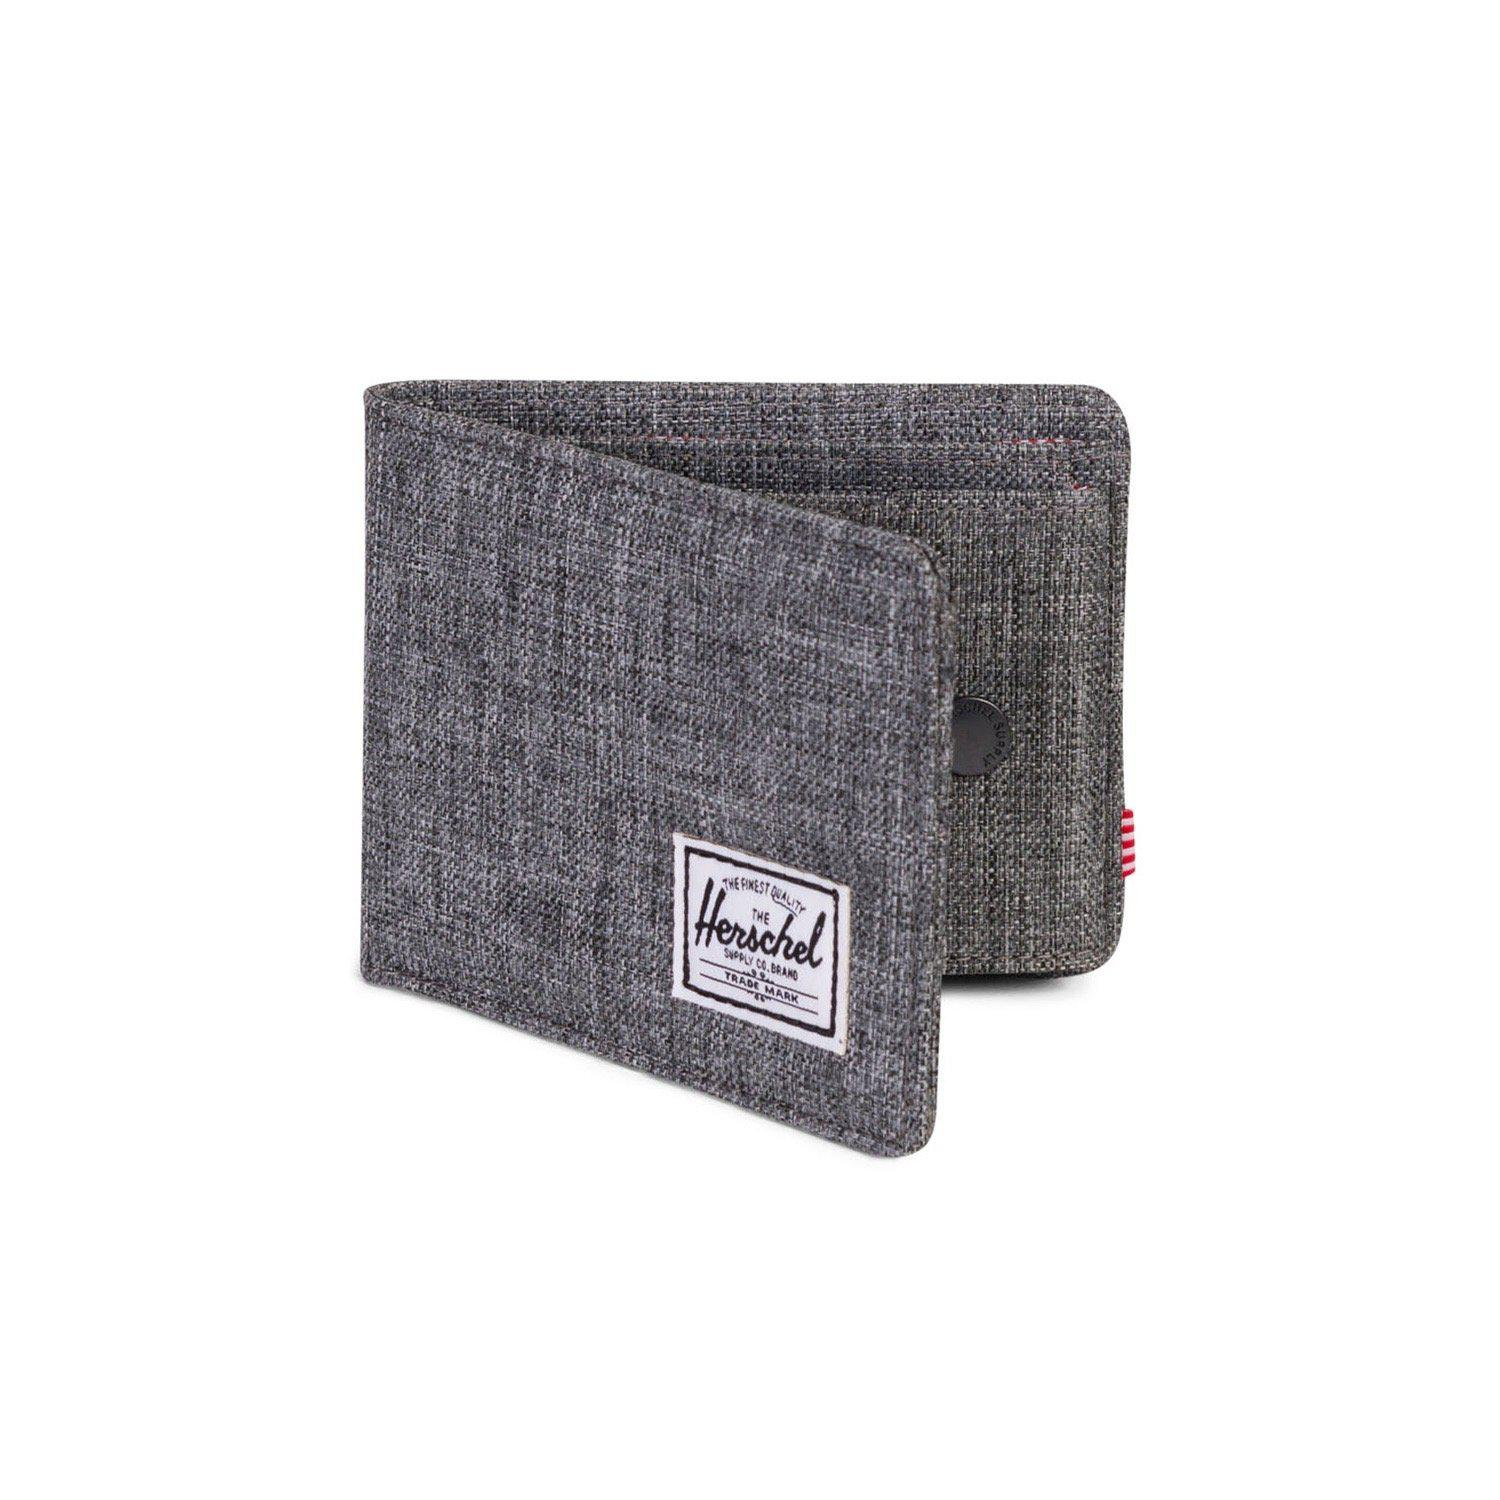 714a89fbc41 Herschel Supply Co. Roy + Coin Rfid in Gray for Men - Lyst